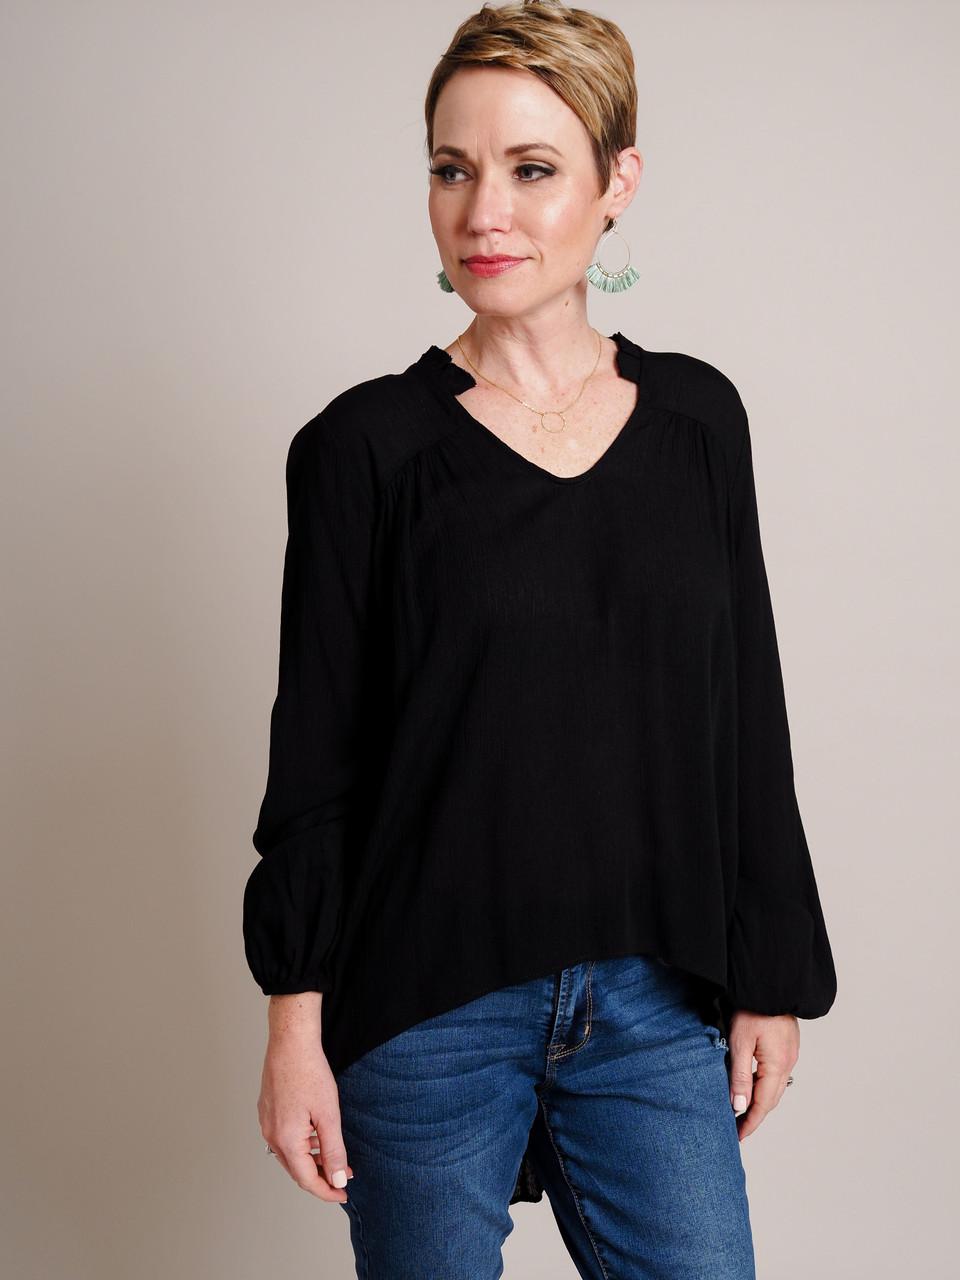 High/Low Tunic With Ruffle Neck Detail